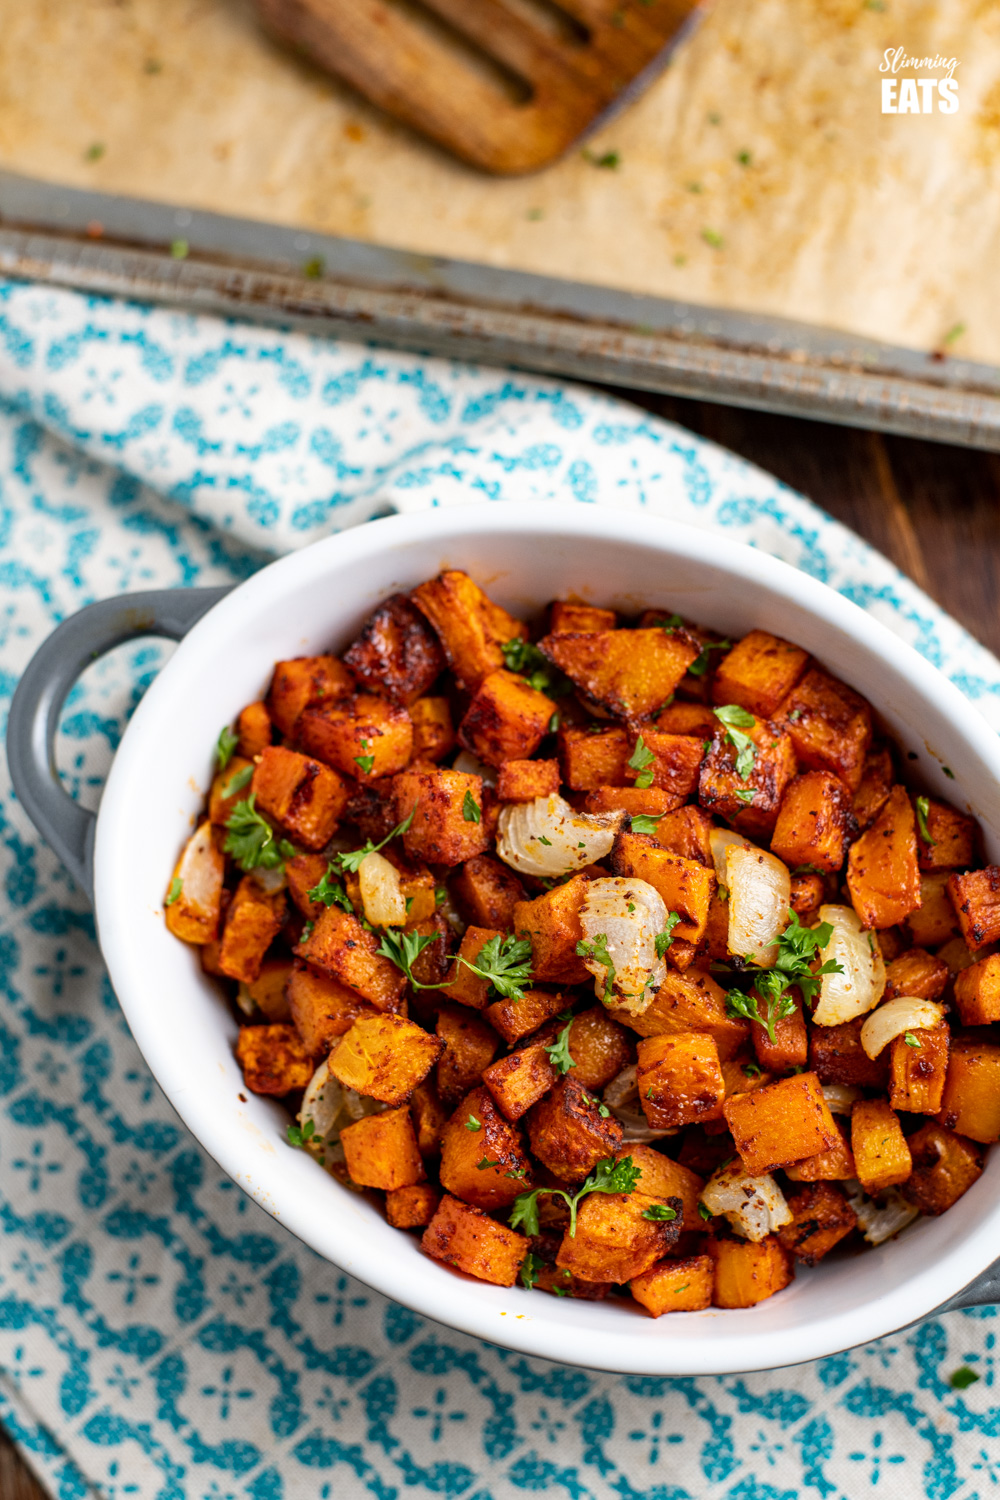 roasted butternut squash in ceramic dish on patterned napkin next to baking tray